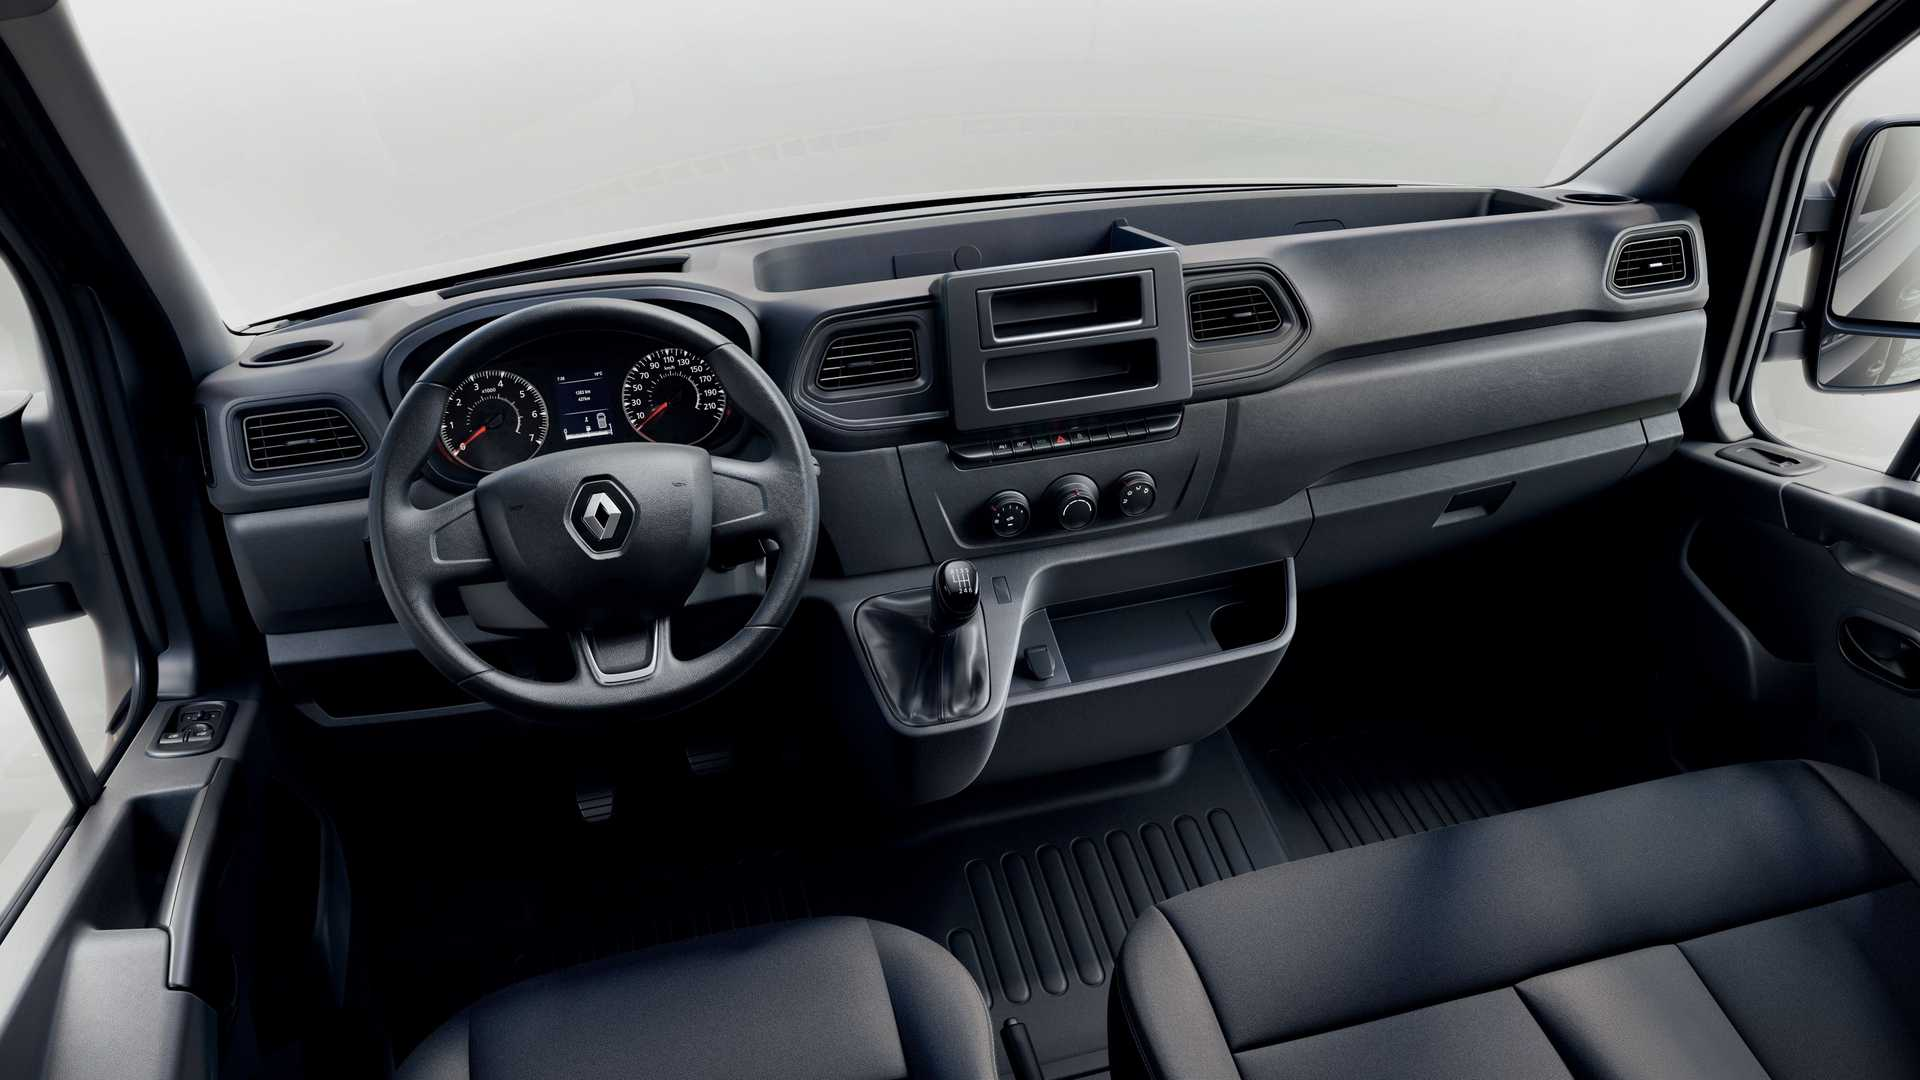 52 The Best 2020 Renault Trafic Configurations